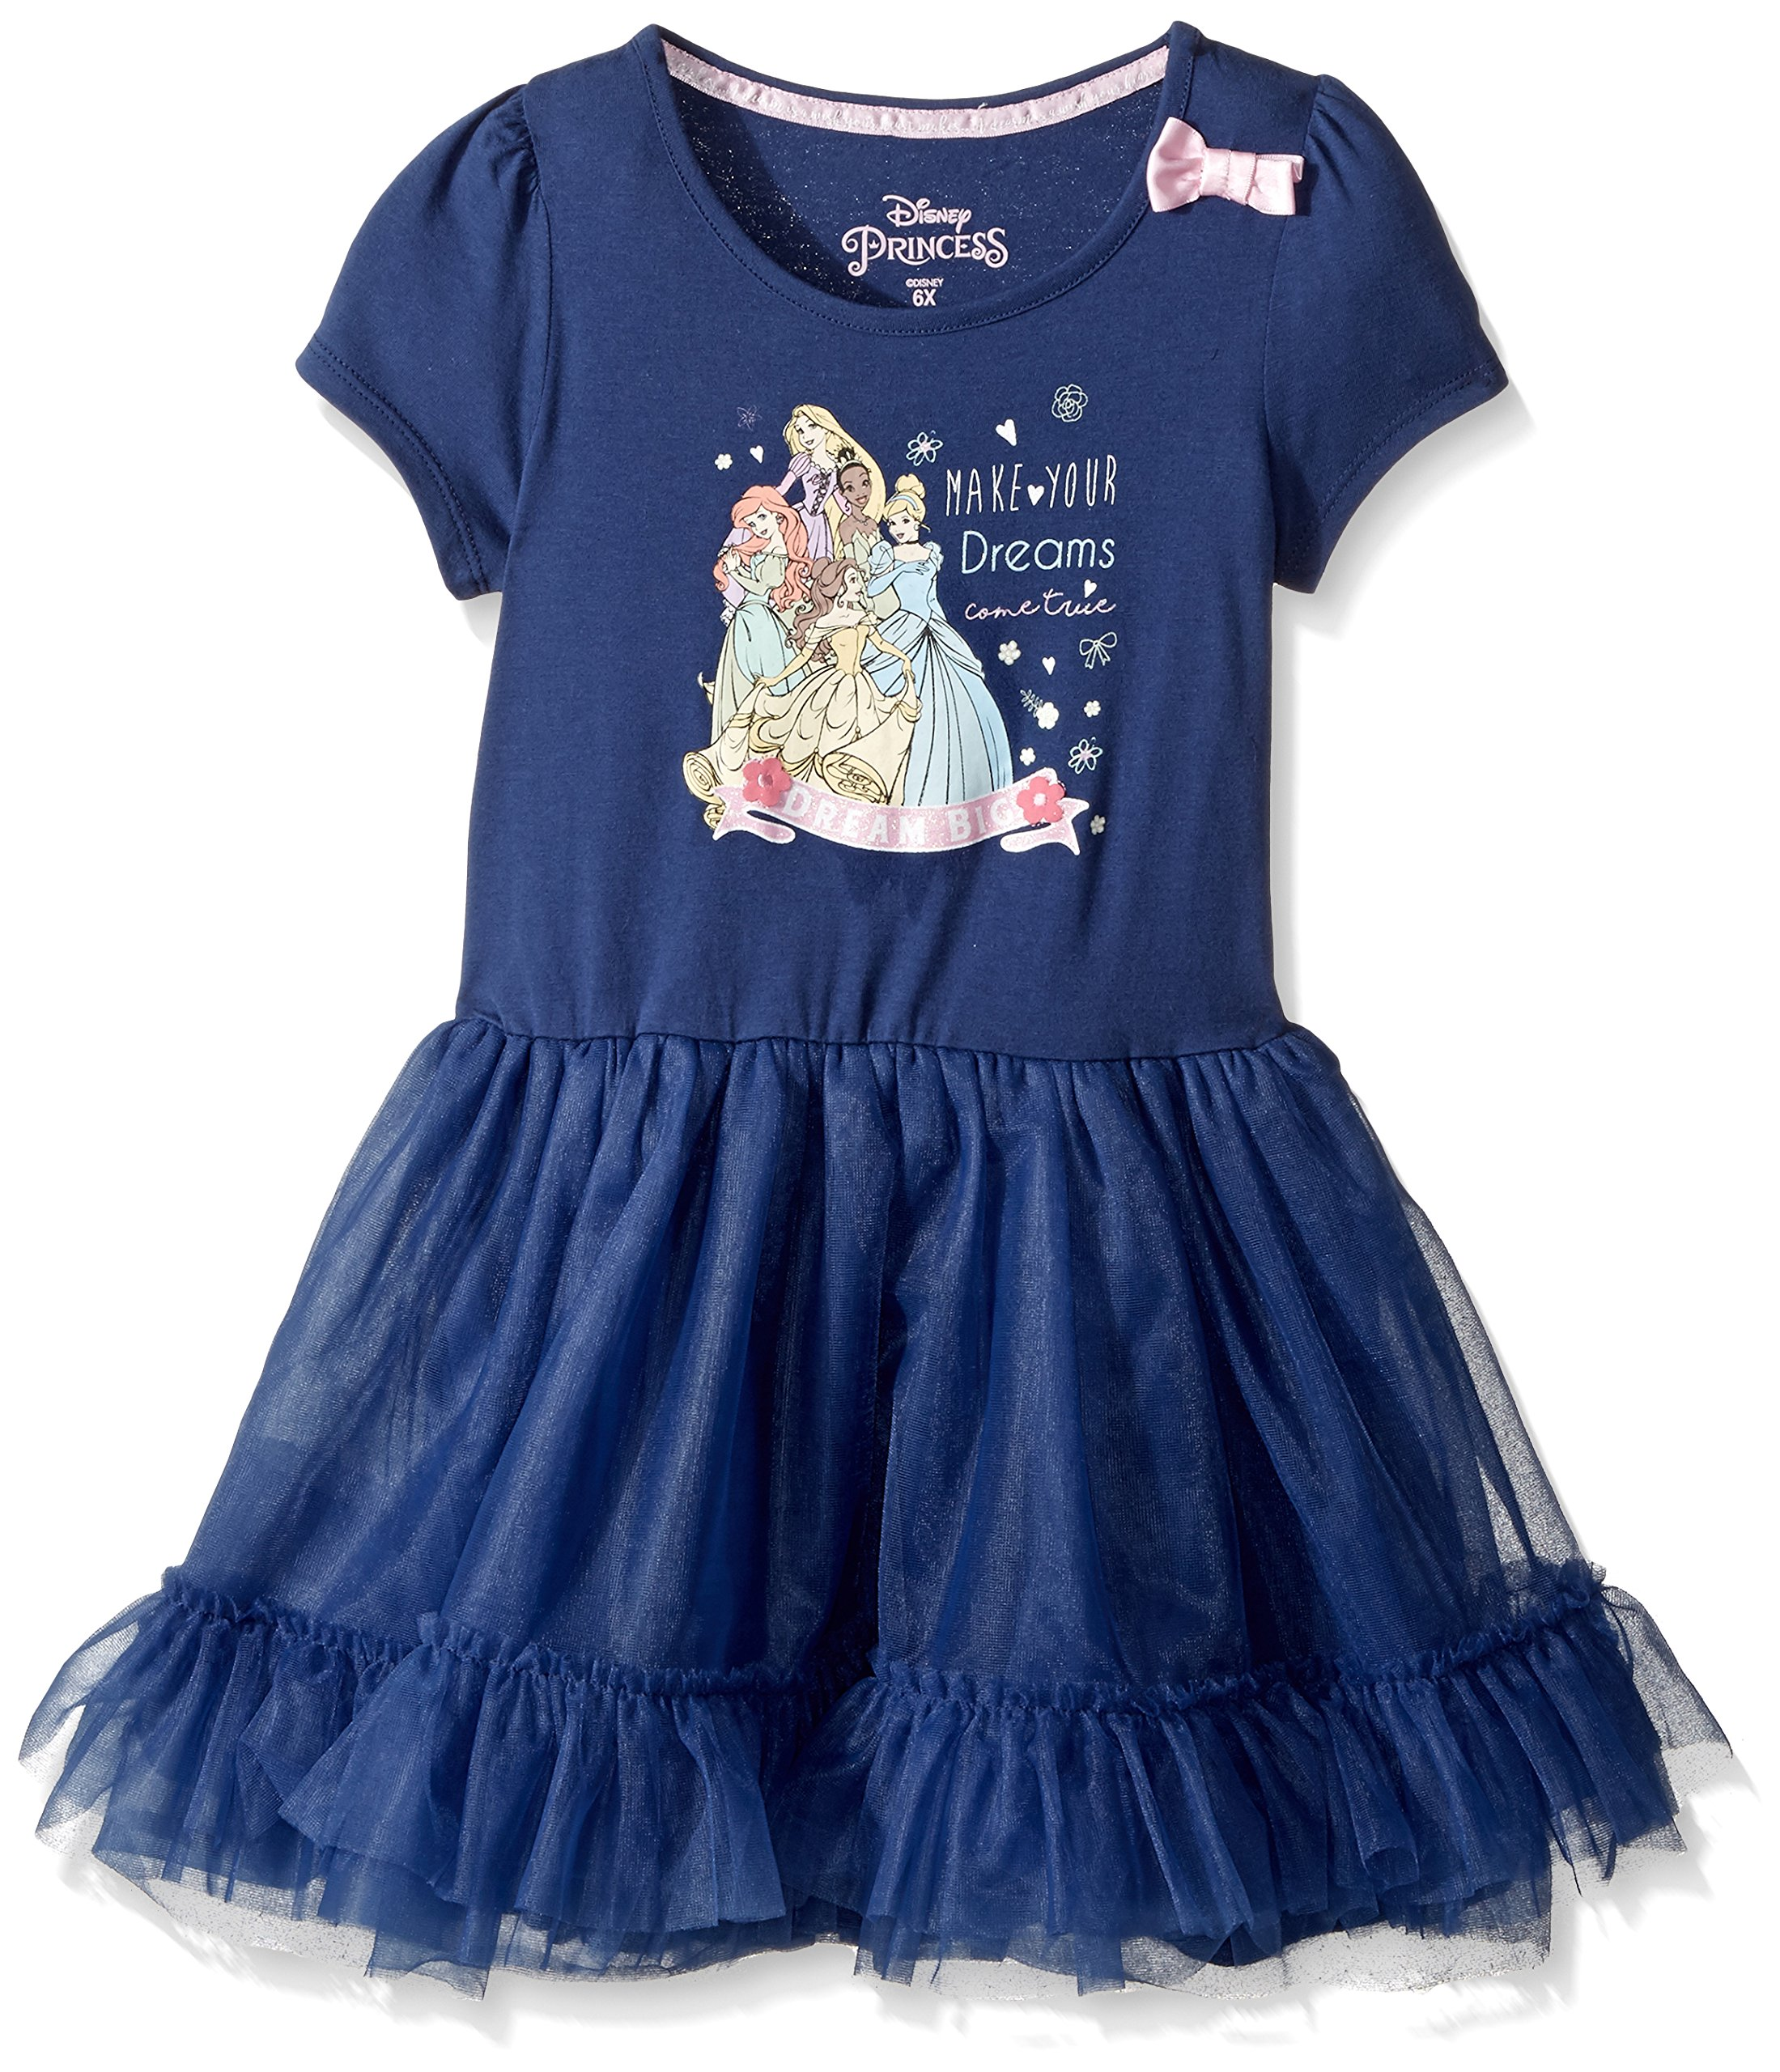 Disney Toddler Girls' Princess Ruffle Dress, Navy, 3T